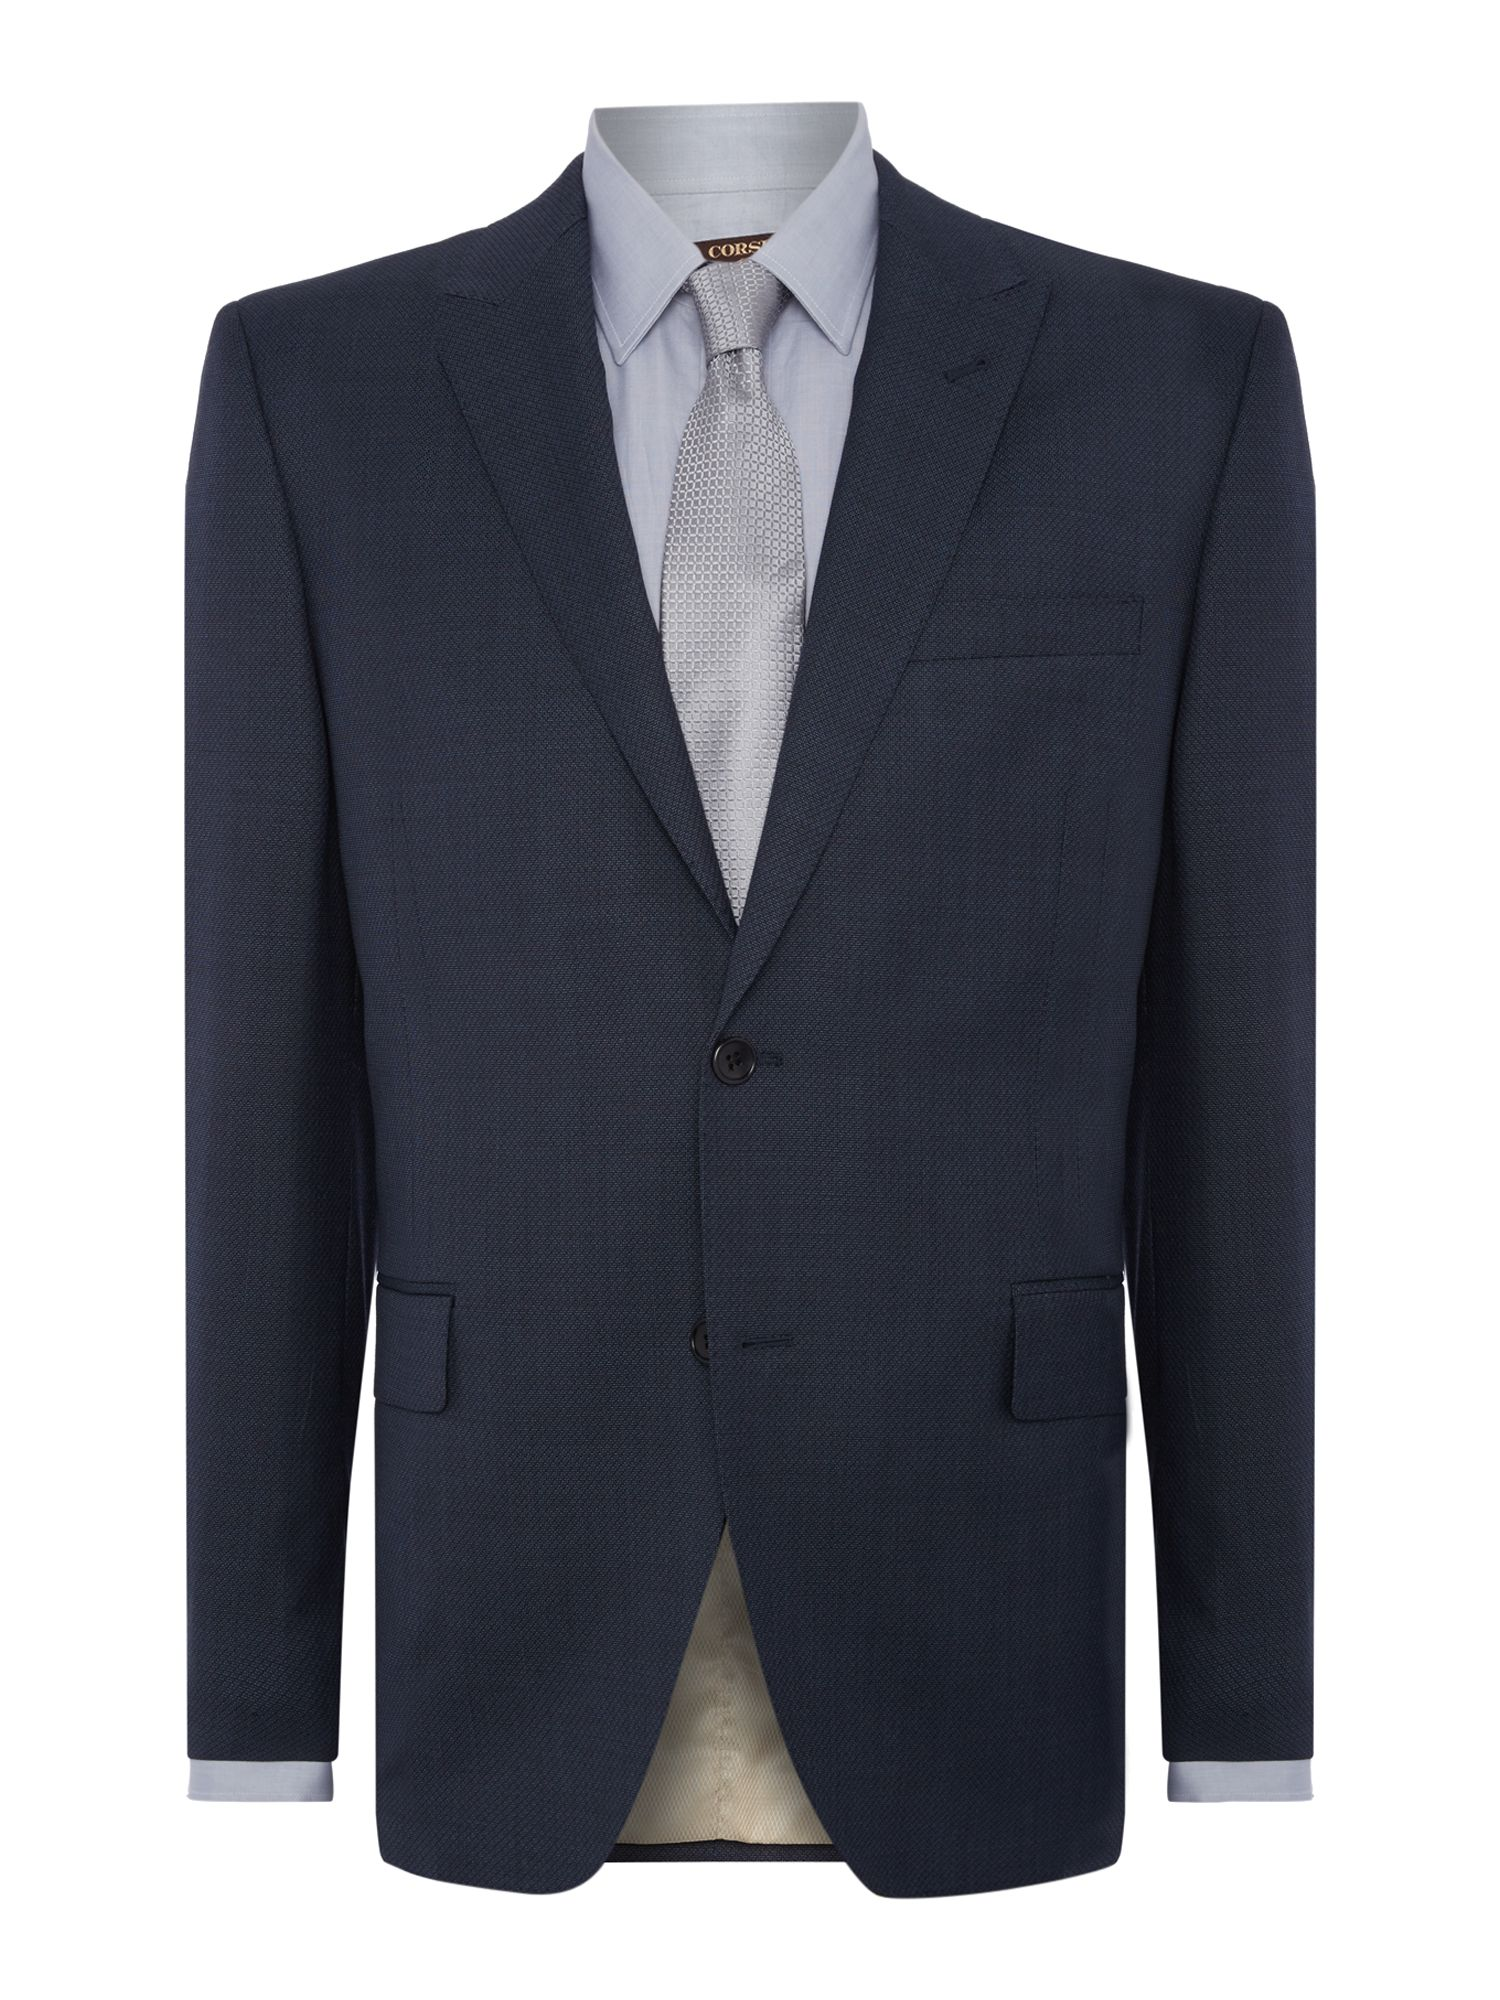 Men's Corsivo Ermes Textured Suit Jacket, Petrol Blue